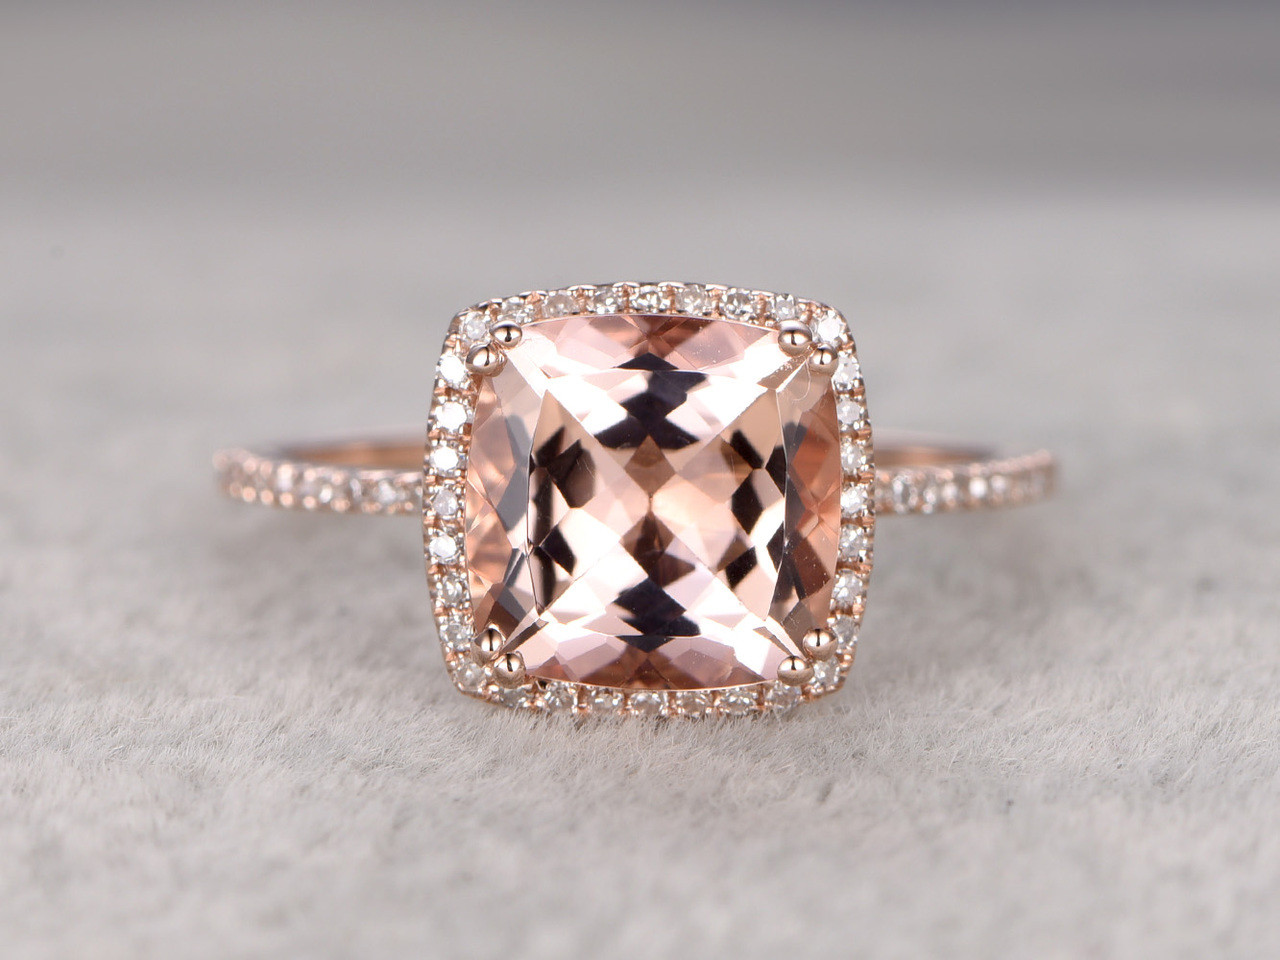 9mm Big Cushion 3 Carat Morganite Engagement Ring Diamond Wedding Ring 14k Rose  Gold Claw Prongs